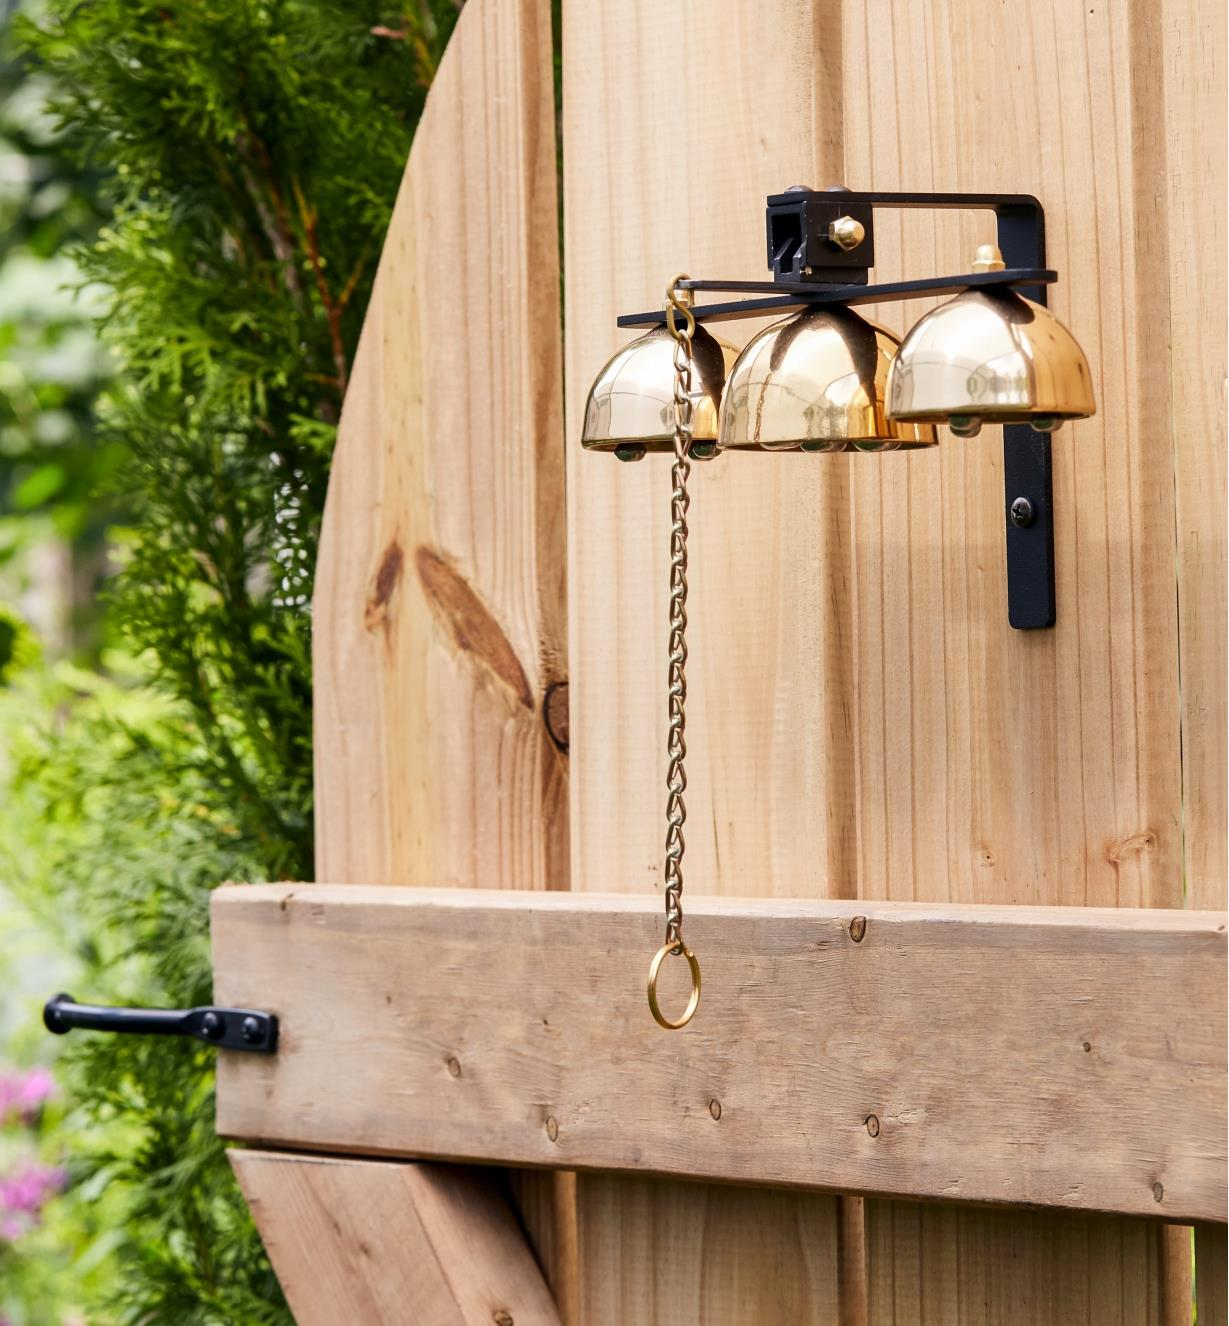 Garden bells mounted on a wooden gate